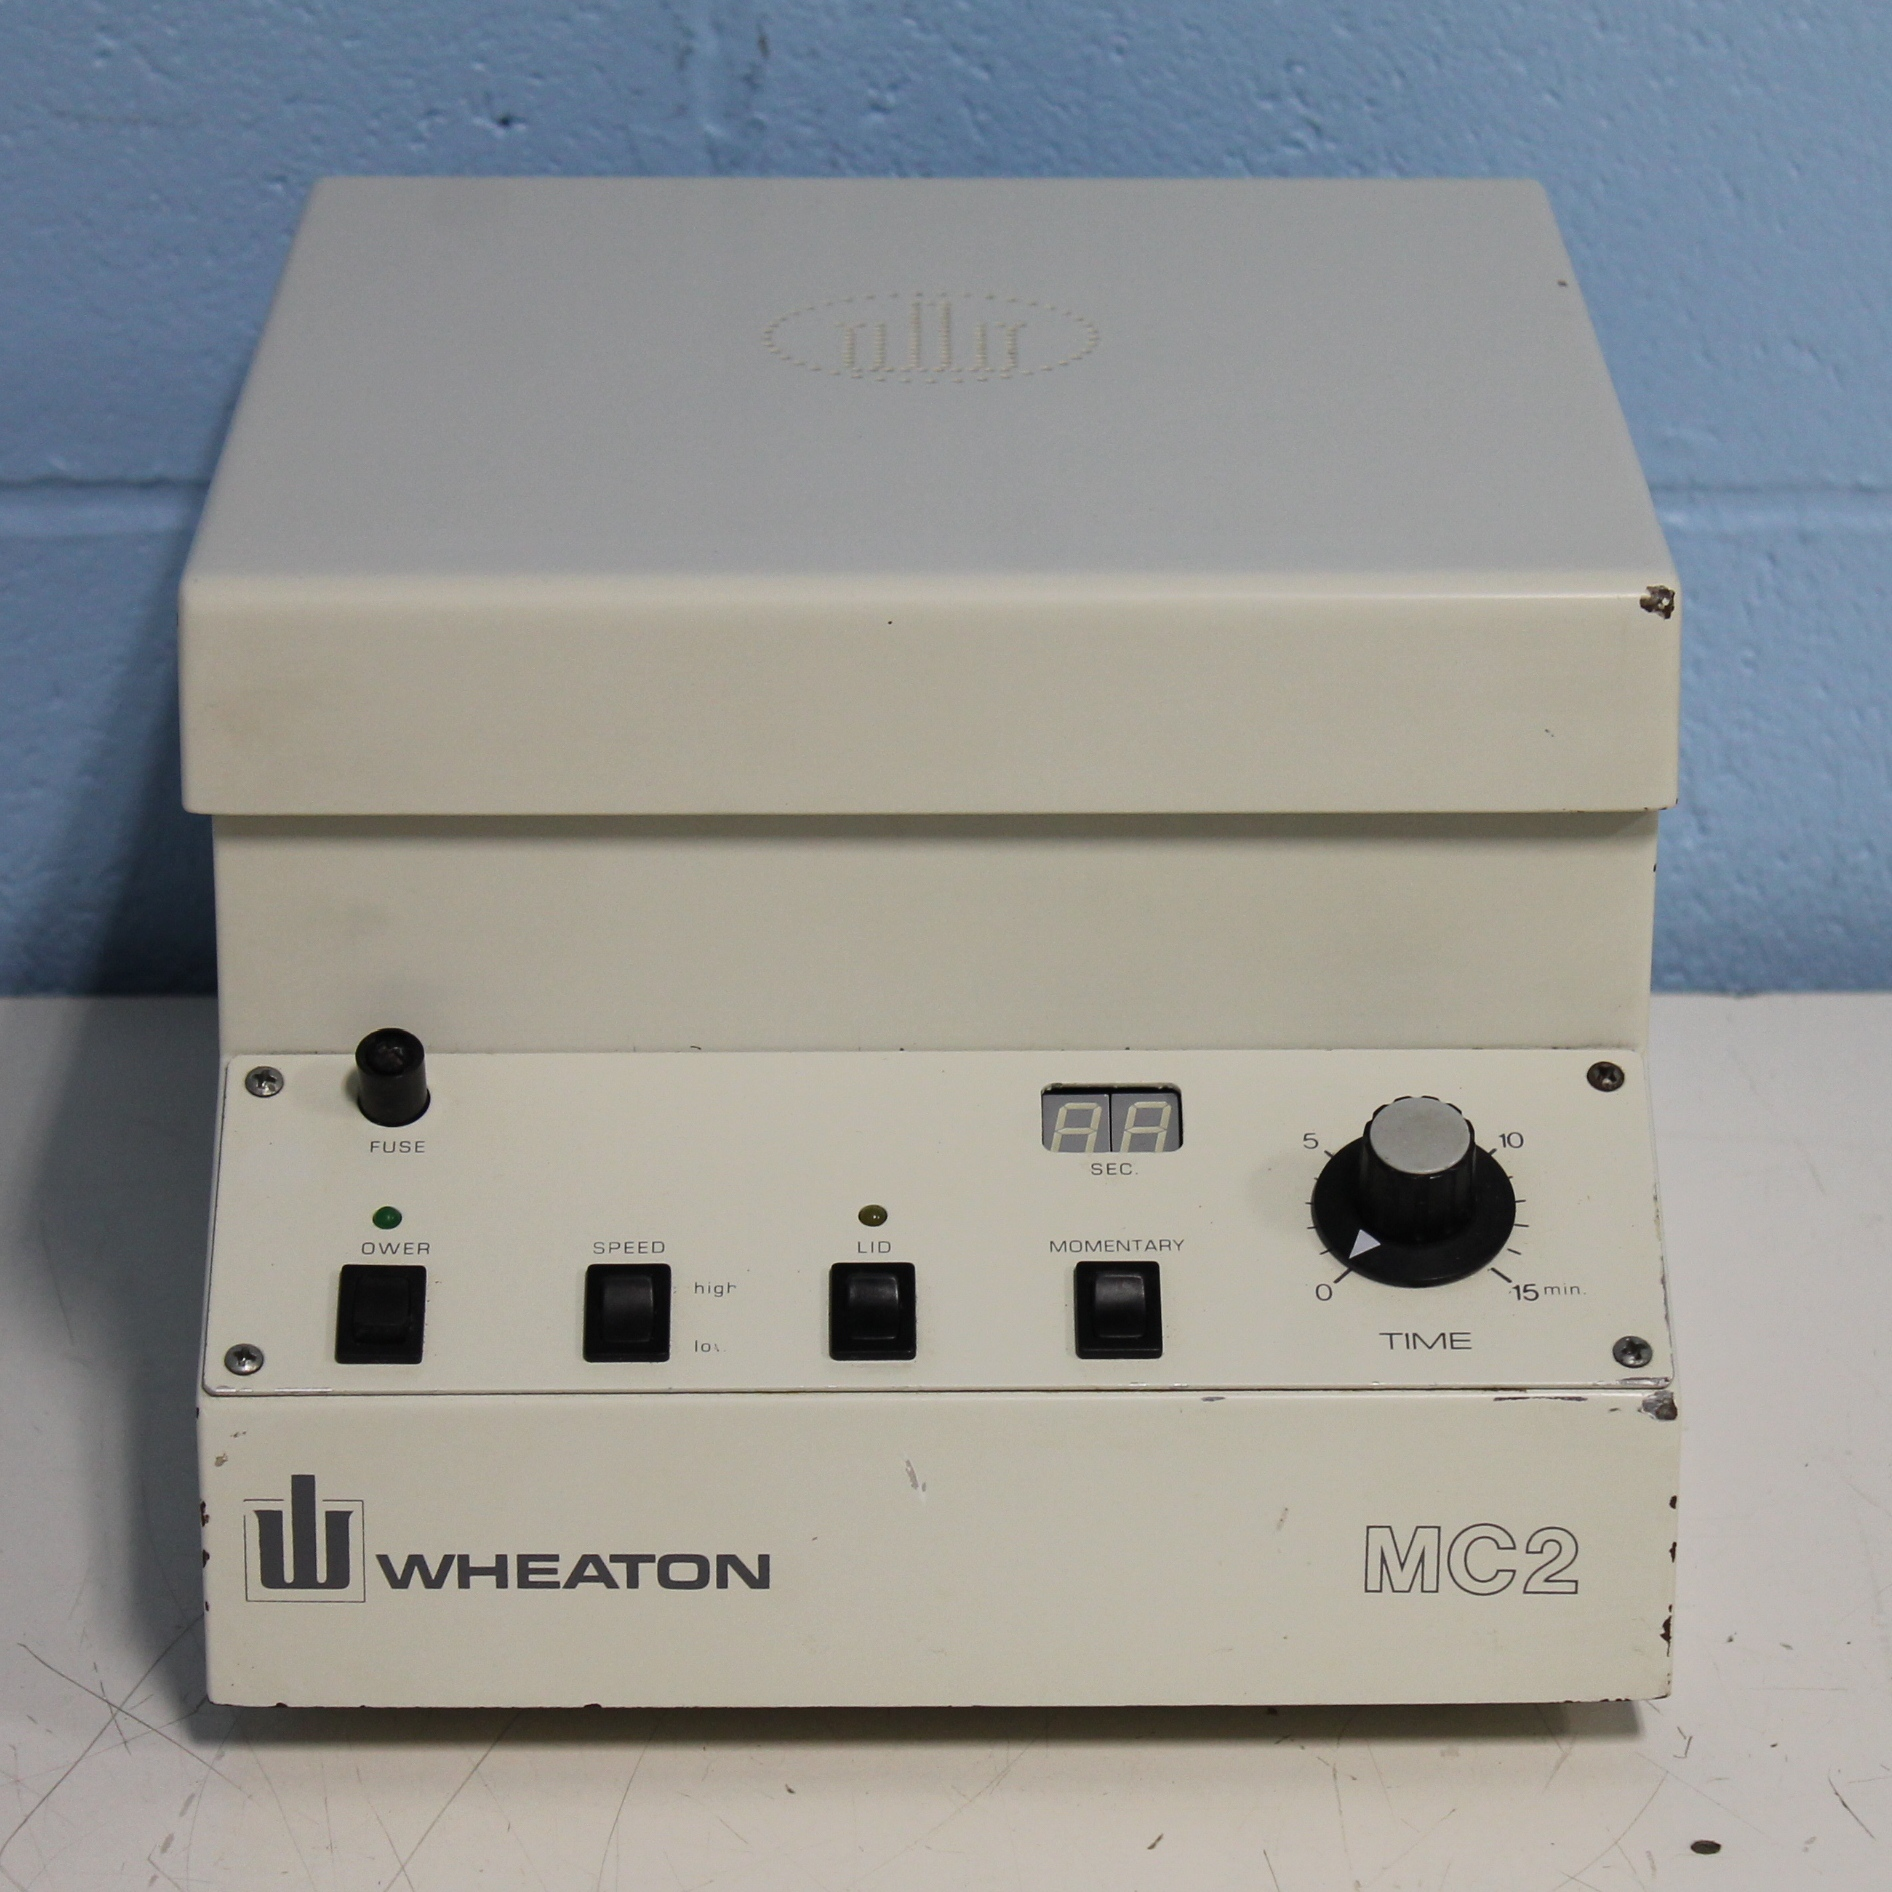 Wheaton 247400 Desktop Centrifuge MC2 with Hermle Rotor Image